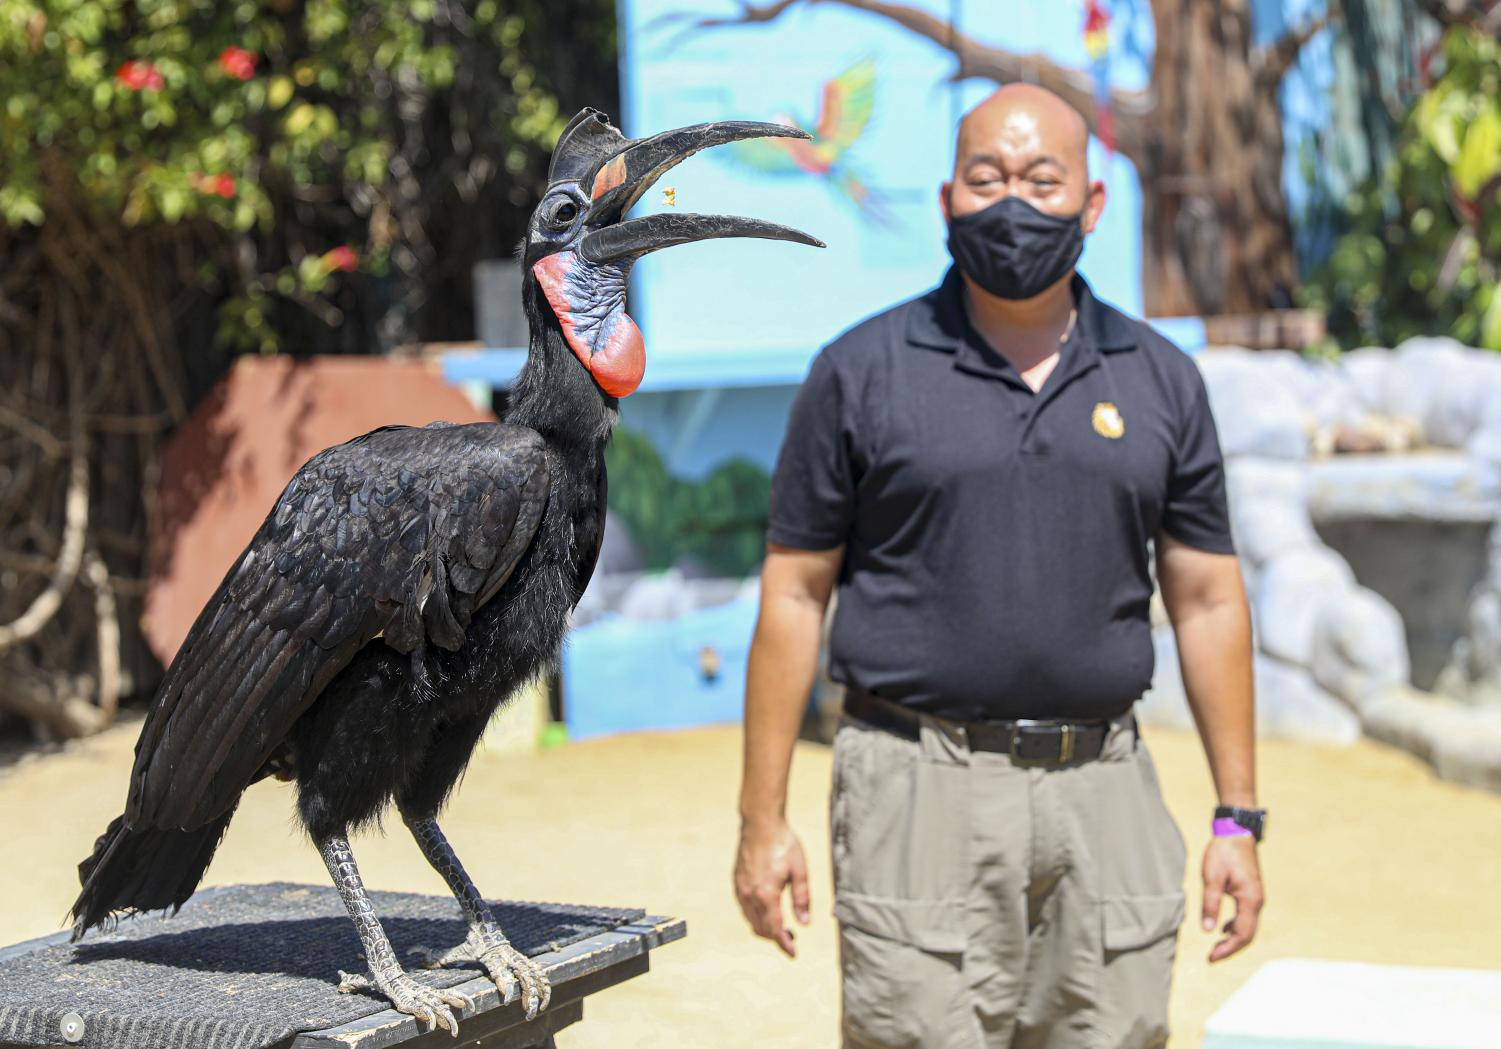 Beaker, an Abyssinian Ground Hornbill, catches a treat as Gary Mui poses behind him